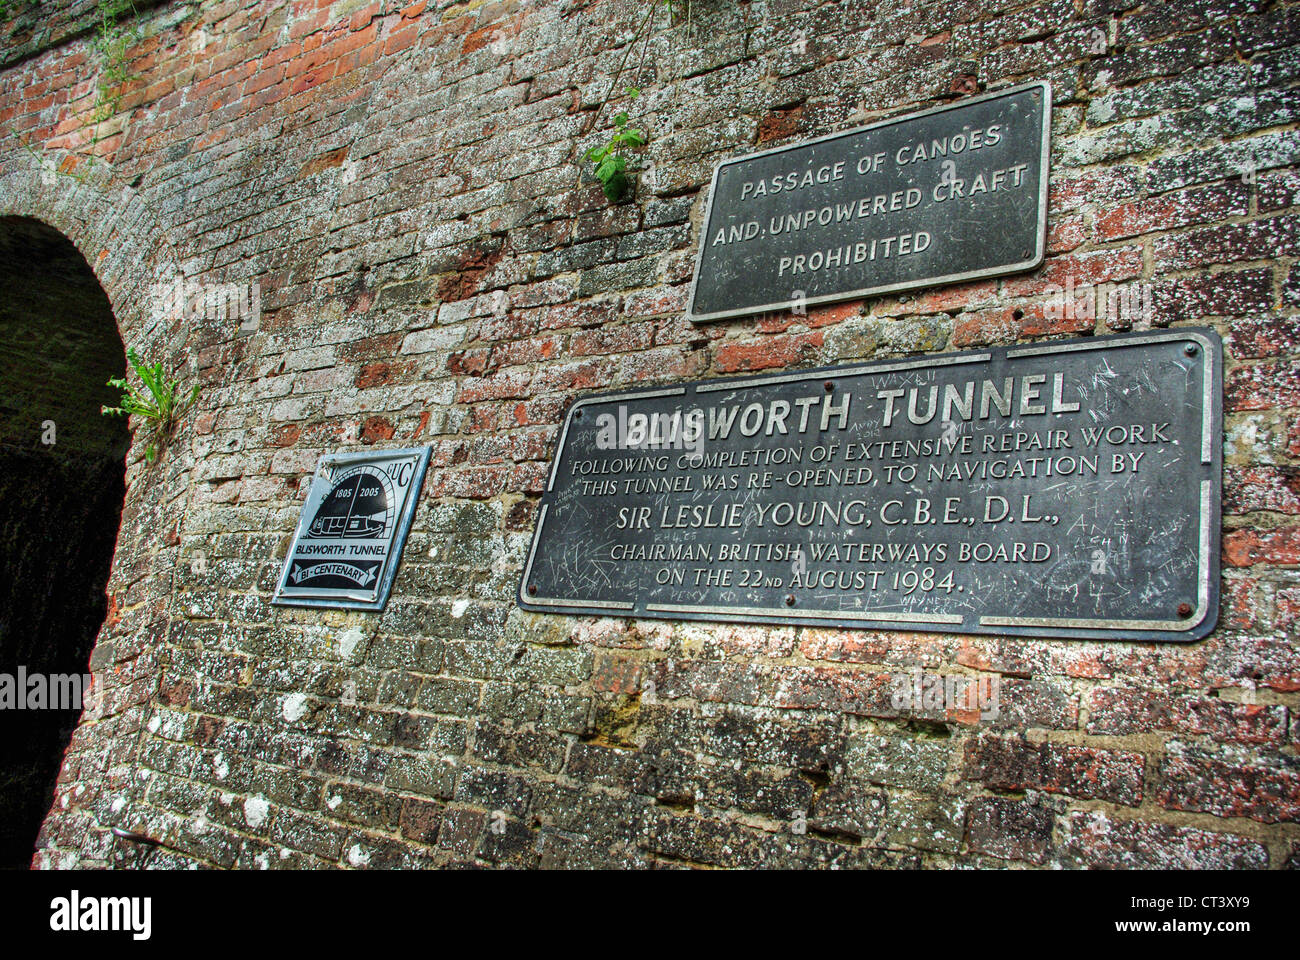 Three metal signs at the entrance to Blisworth tunnel, Stoke Bruerne. - Stock Image